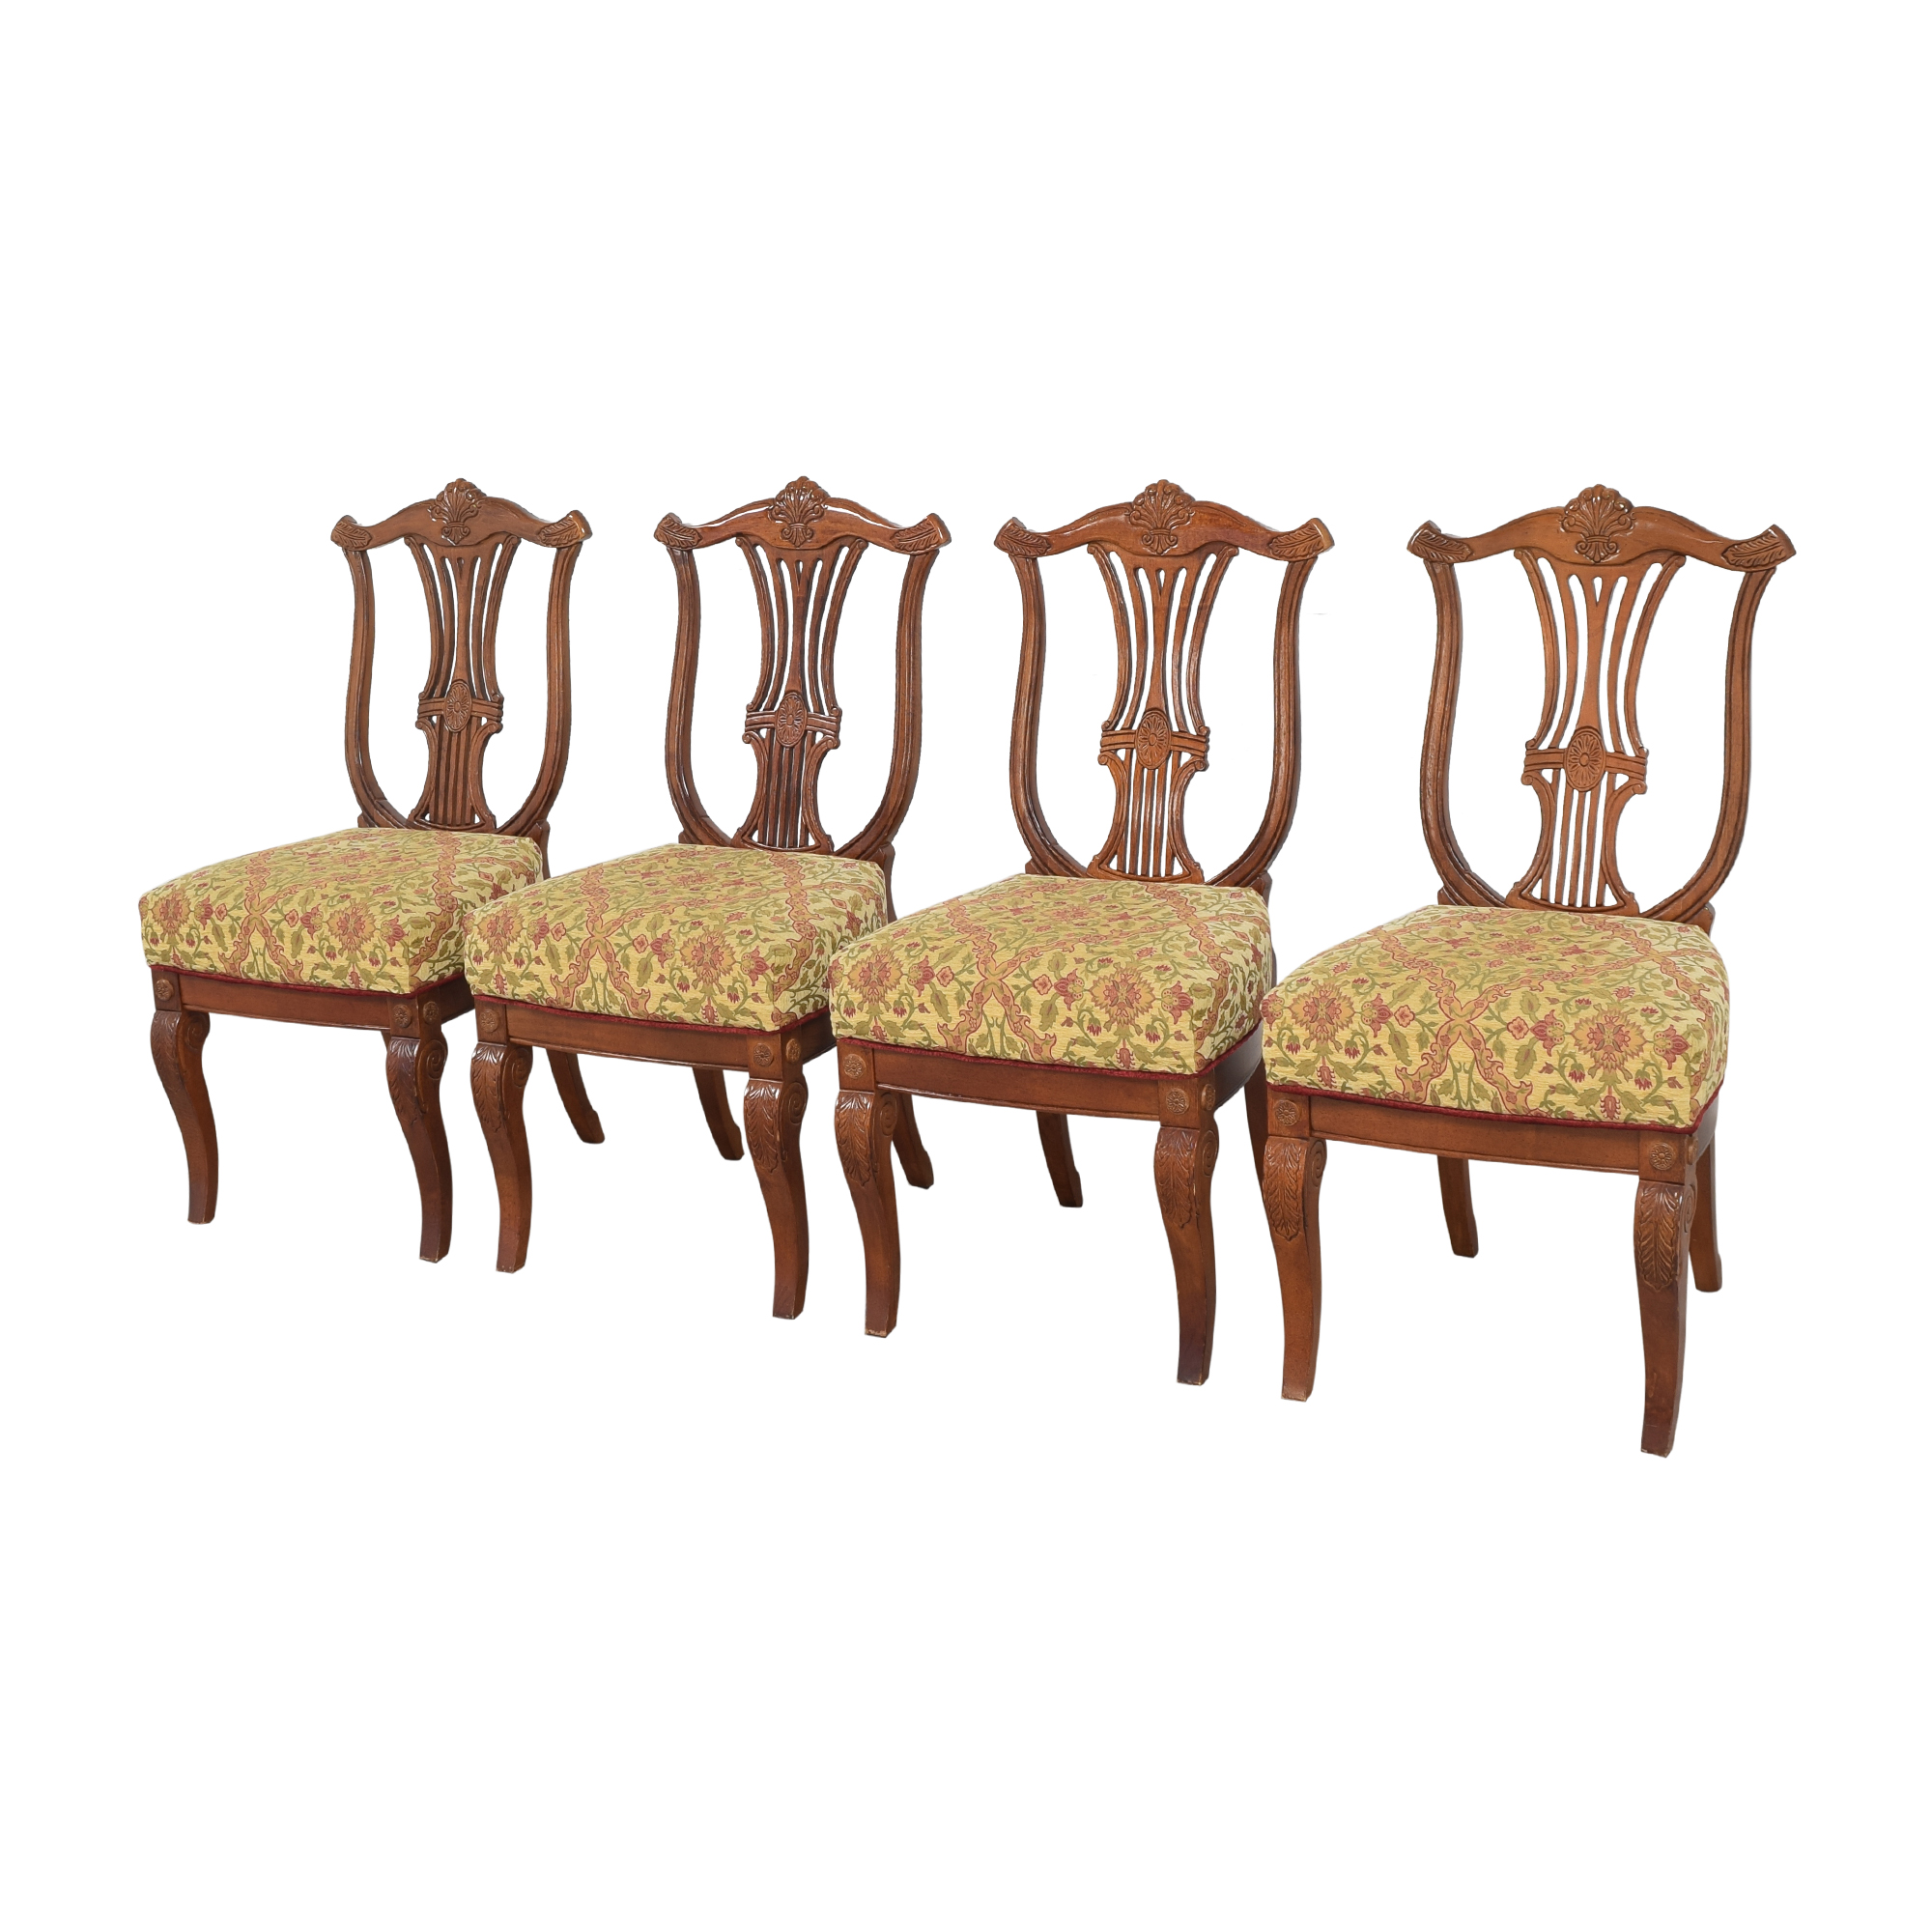 shop Universal Furniture Upholstered Dining Chairs Universal Furniture